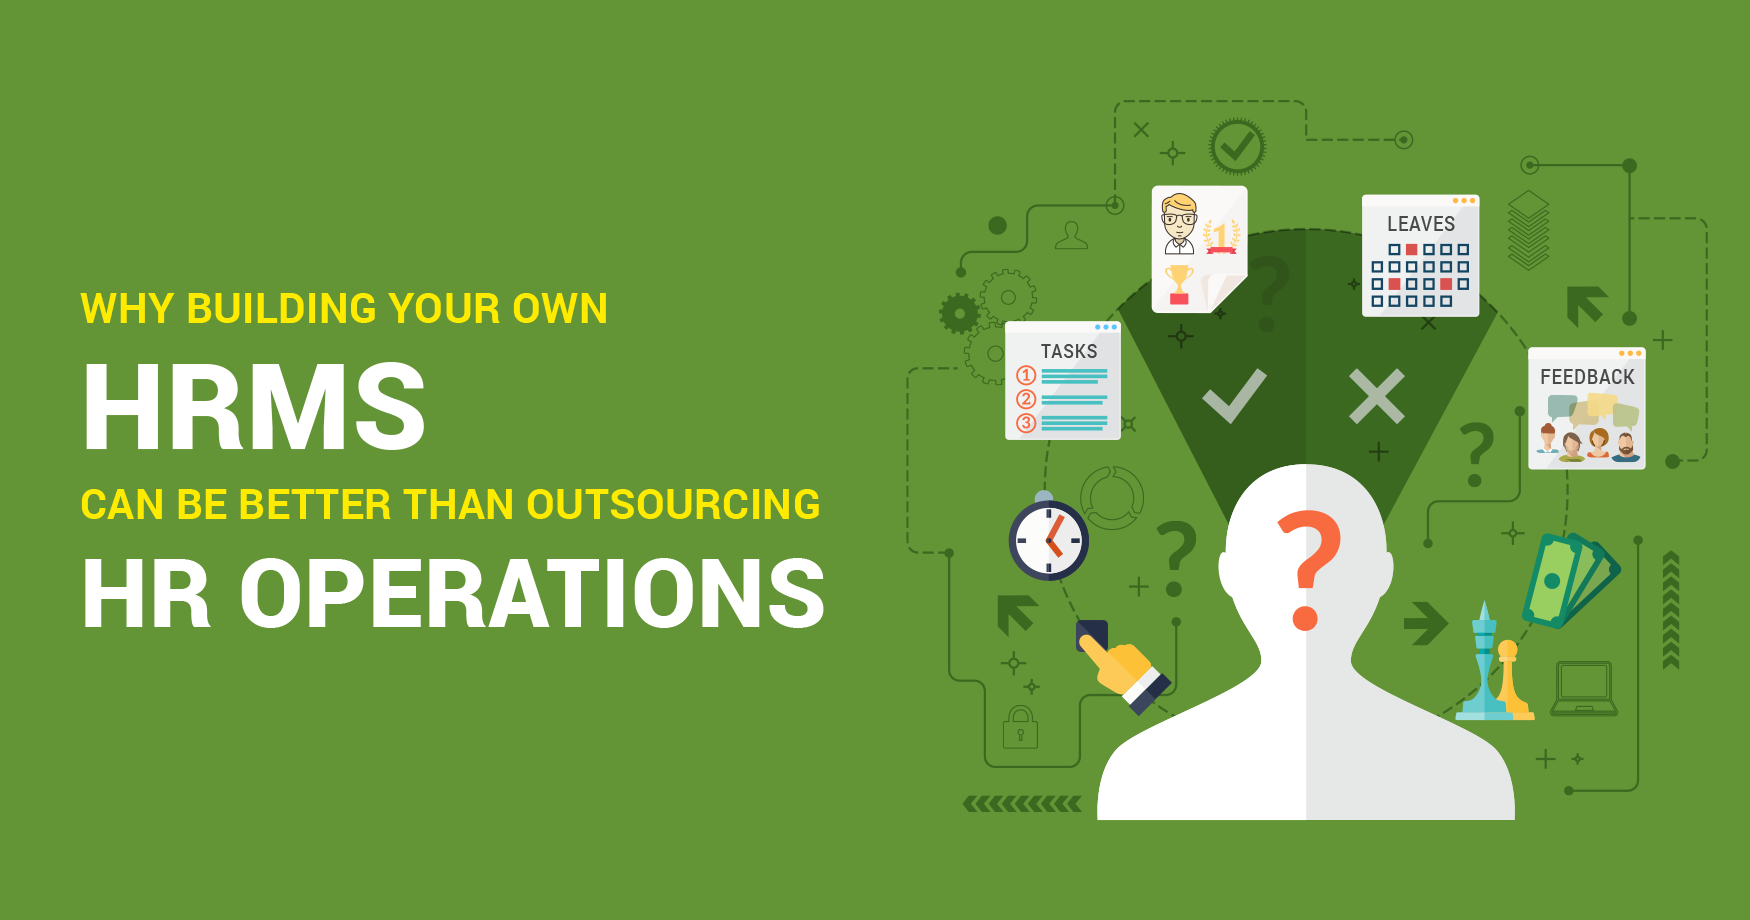 Why building your own HRMS can be better than outsourcing HR operations